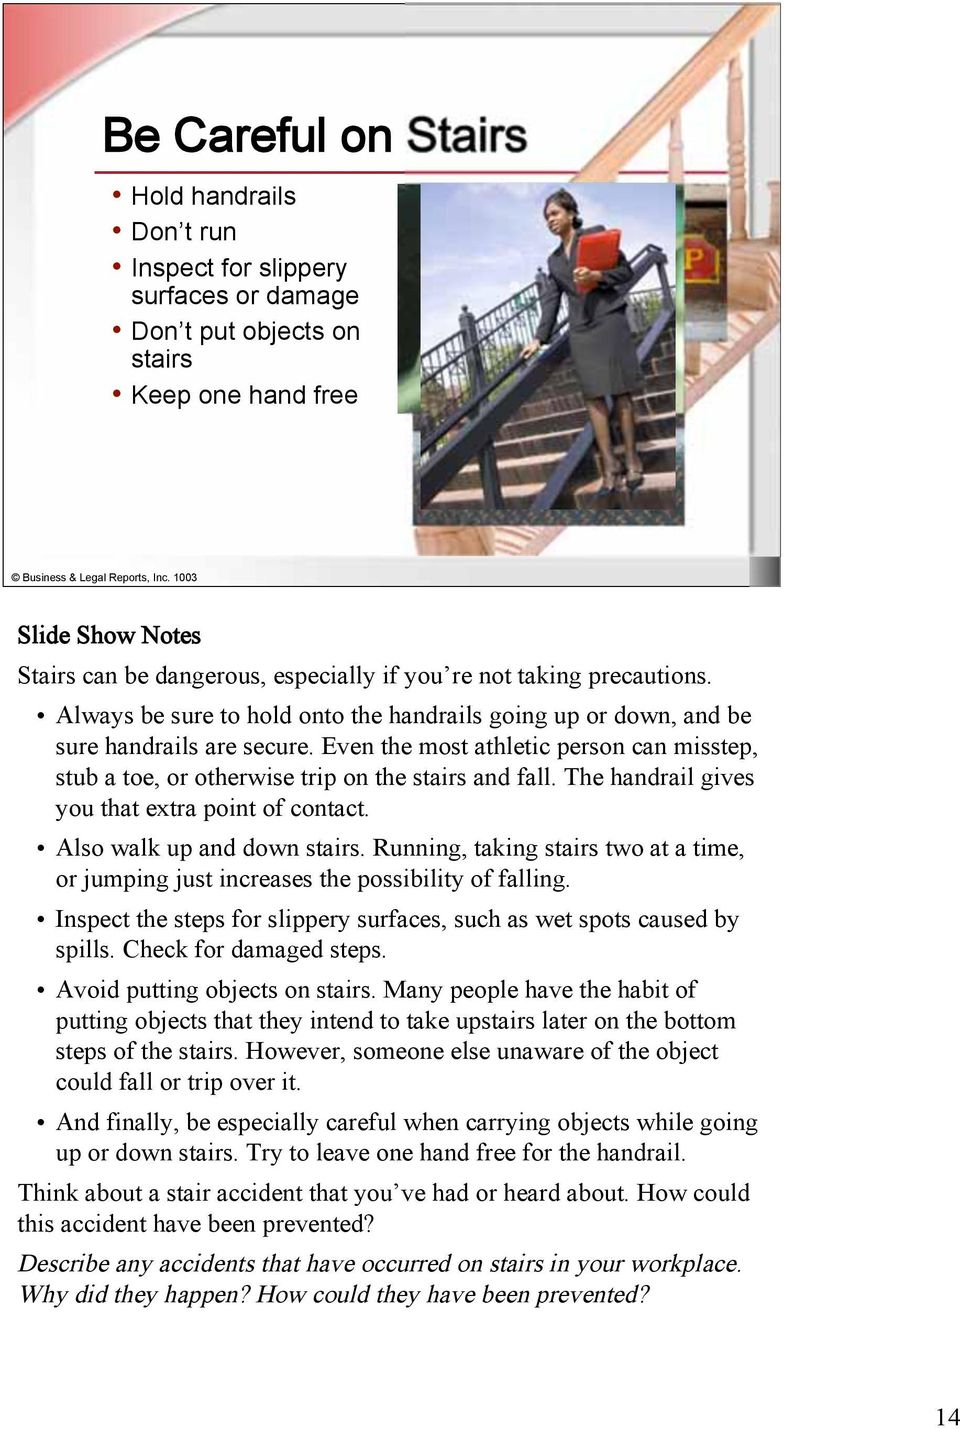 Even the most athletic person can misstep, stub a toe, or otherwise trip on the stairs and fall. The handrail gives you that extra point of contact. Also walk up and down stairs.